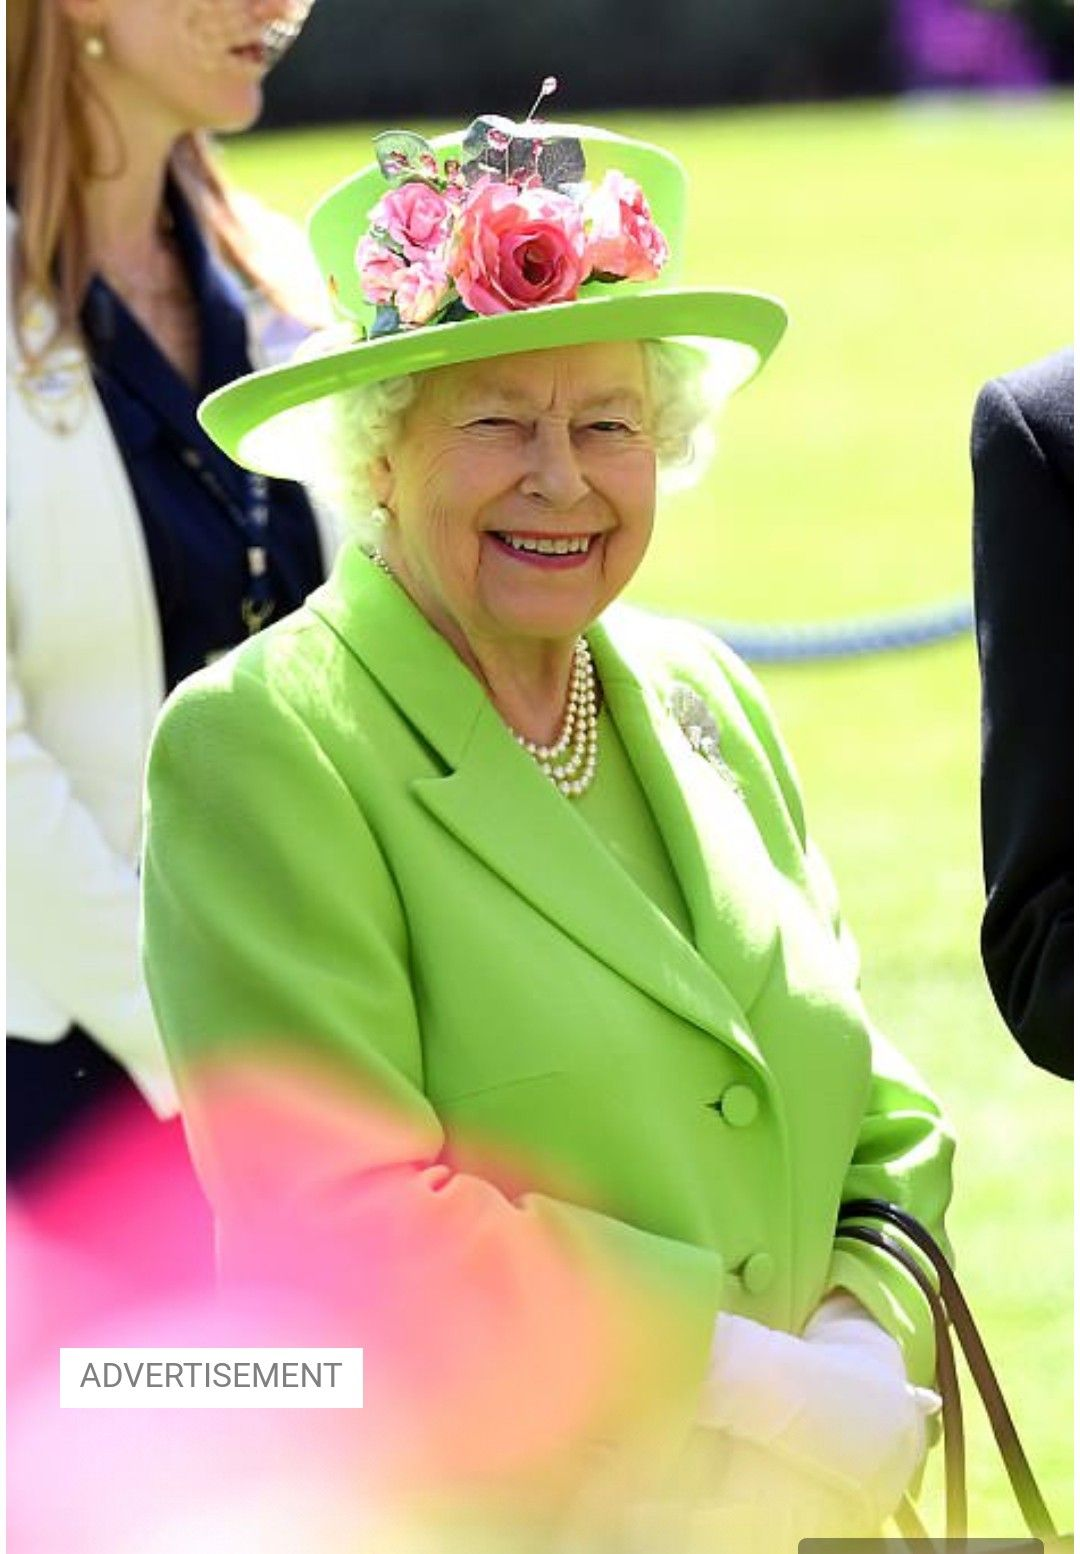 The Queen Looks Very Summer Ready In This Light Green Dress With Matching Hat Queen Elizabeth Photos Queen Elizabeth Royal Family England [ 1554 x 1080 Pixel ]